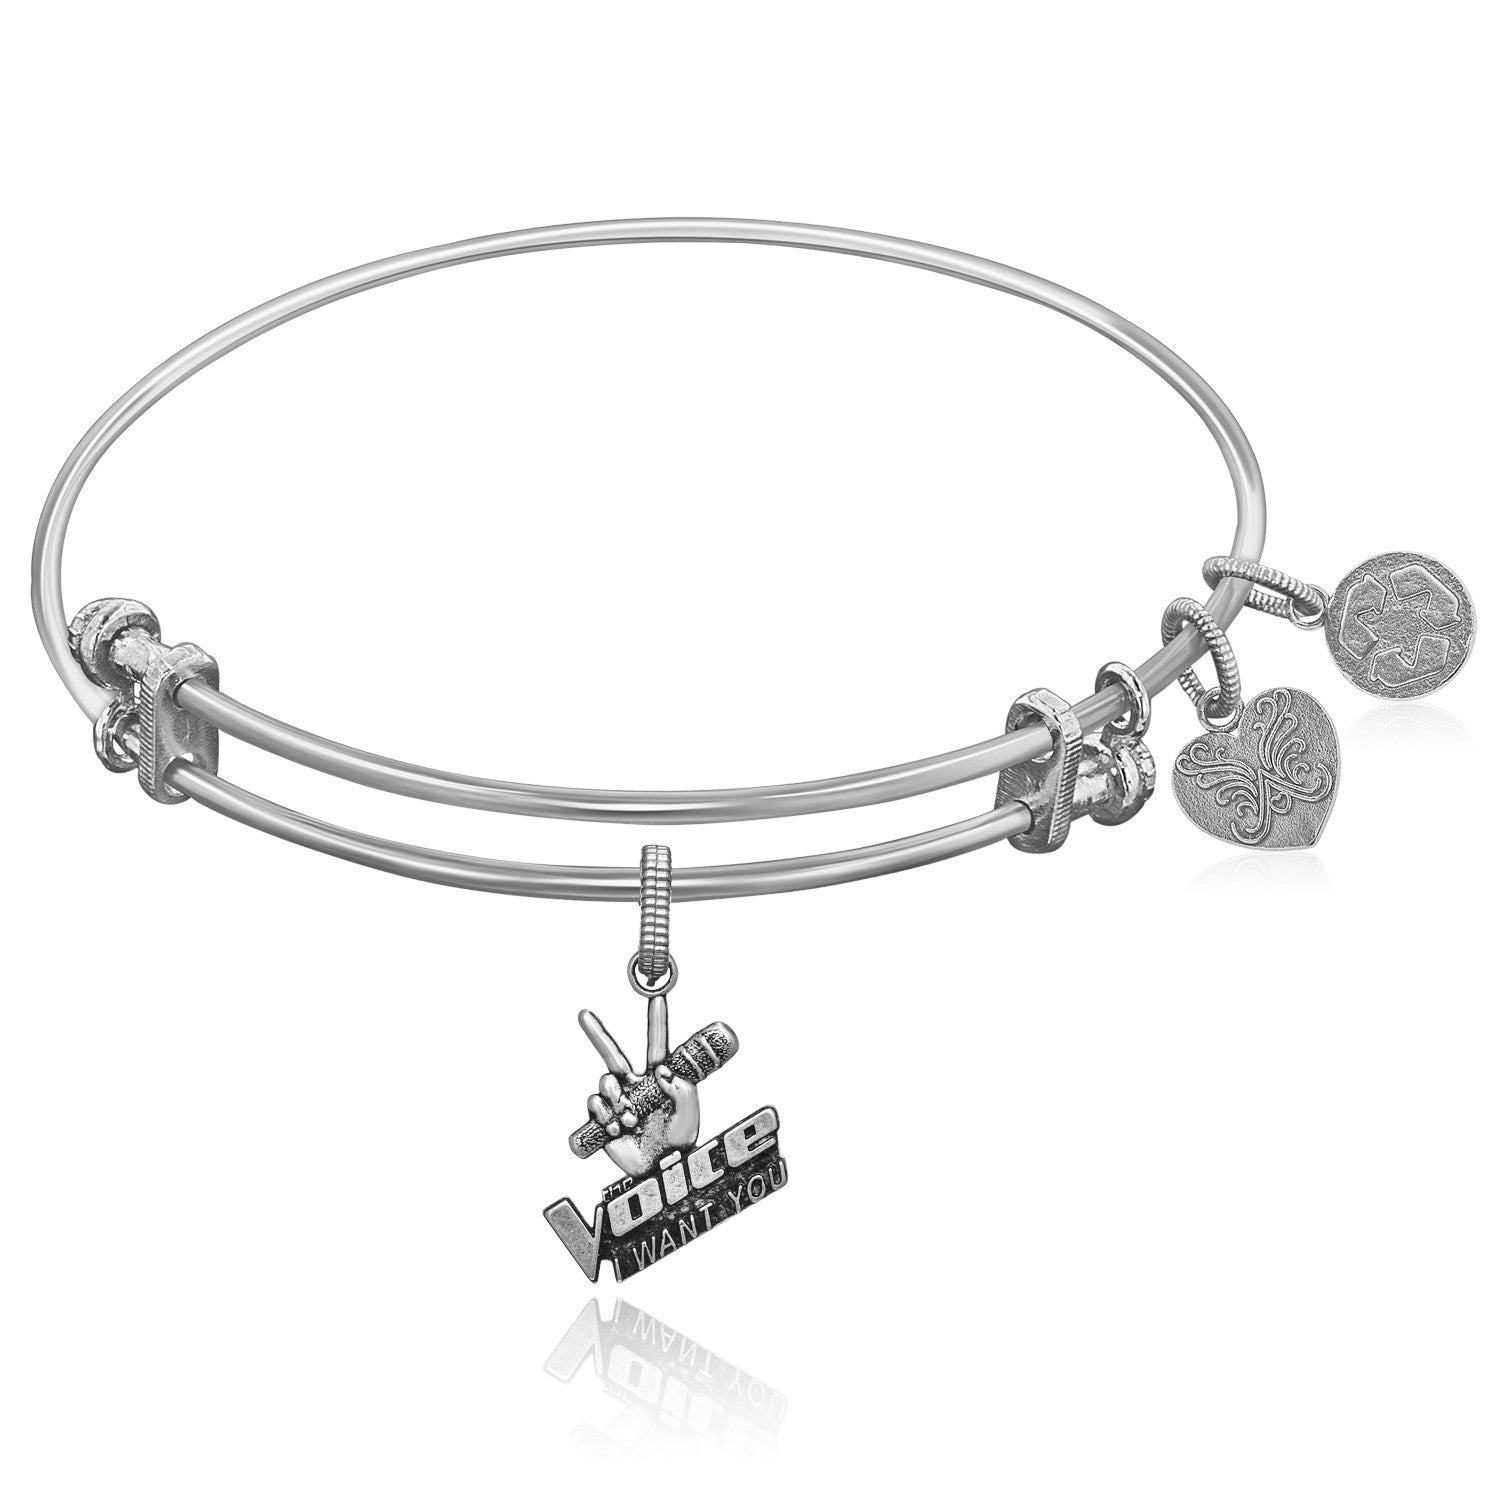 Expandable White Tone Brass Bangle with The Voice Microphone Symbol